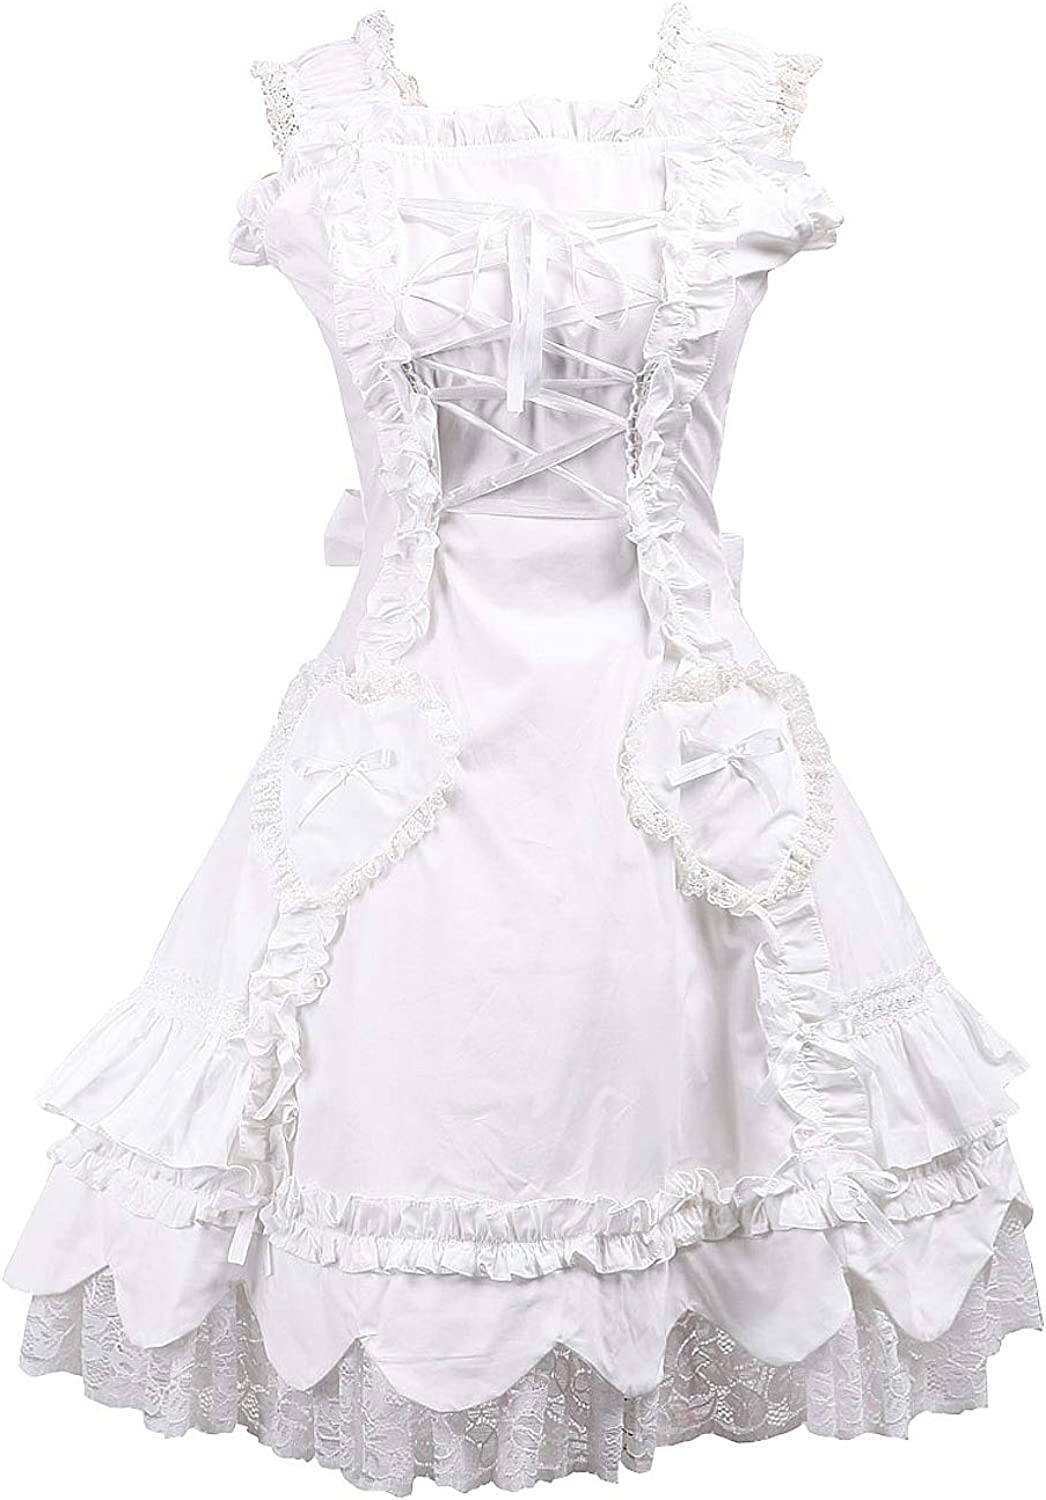 Antaina White Cotton Lace Ruffle Classic Sweet Victorian Lolita Cosplay Dress